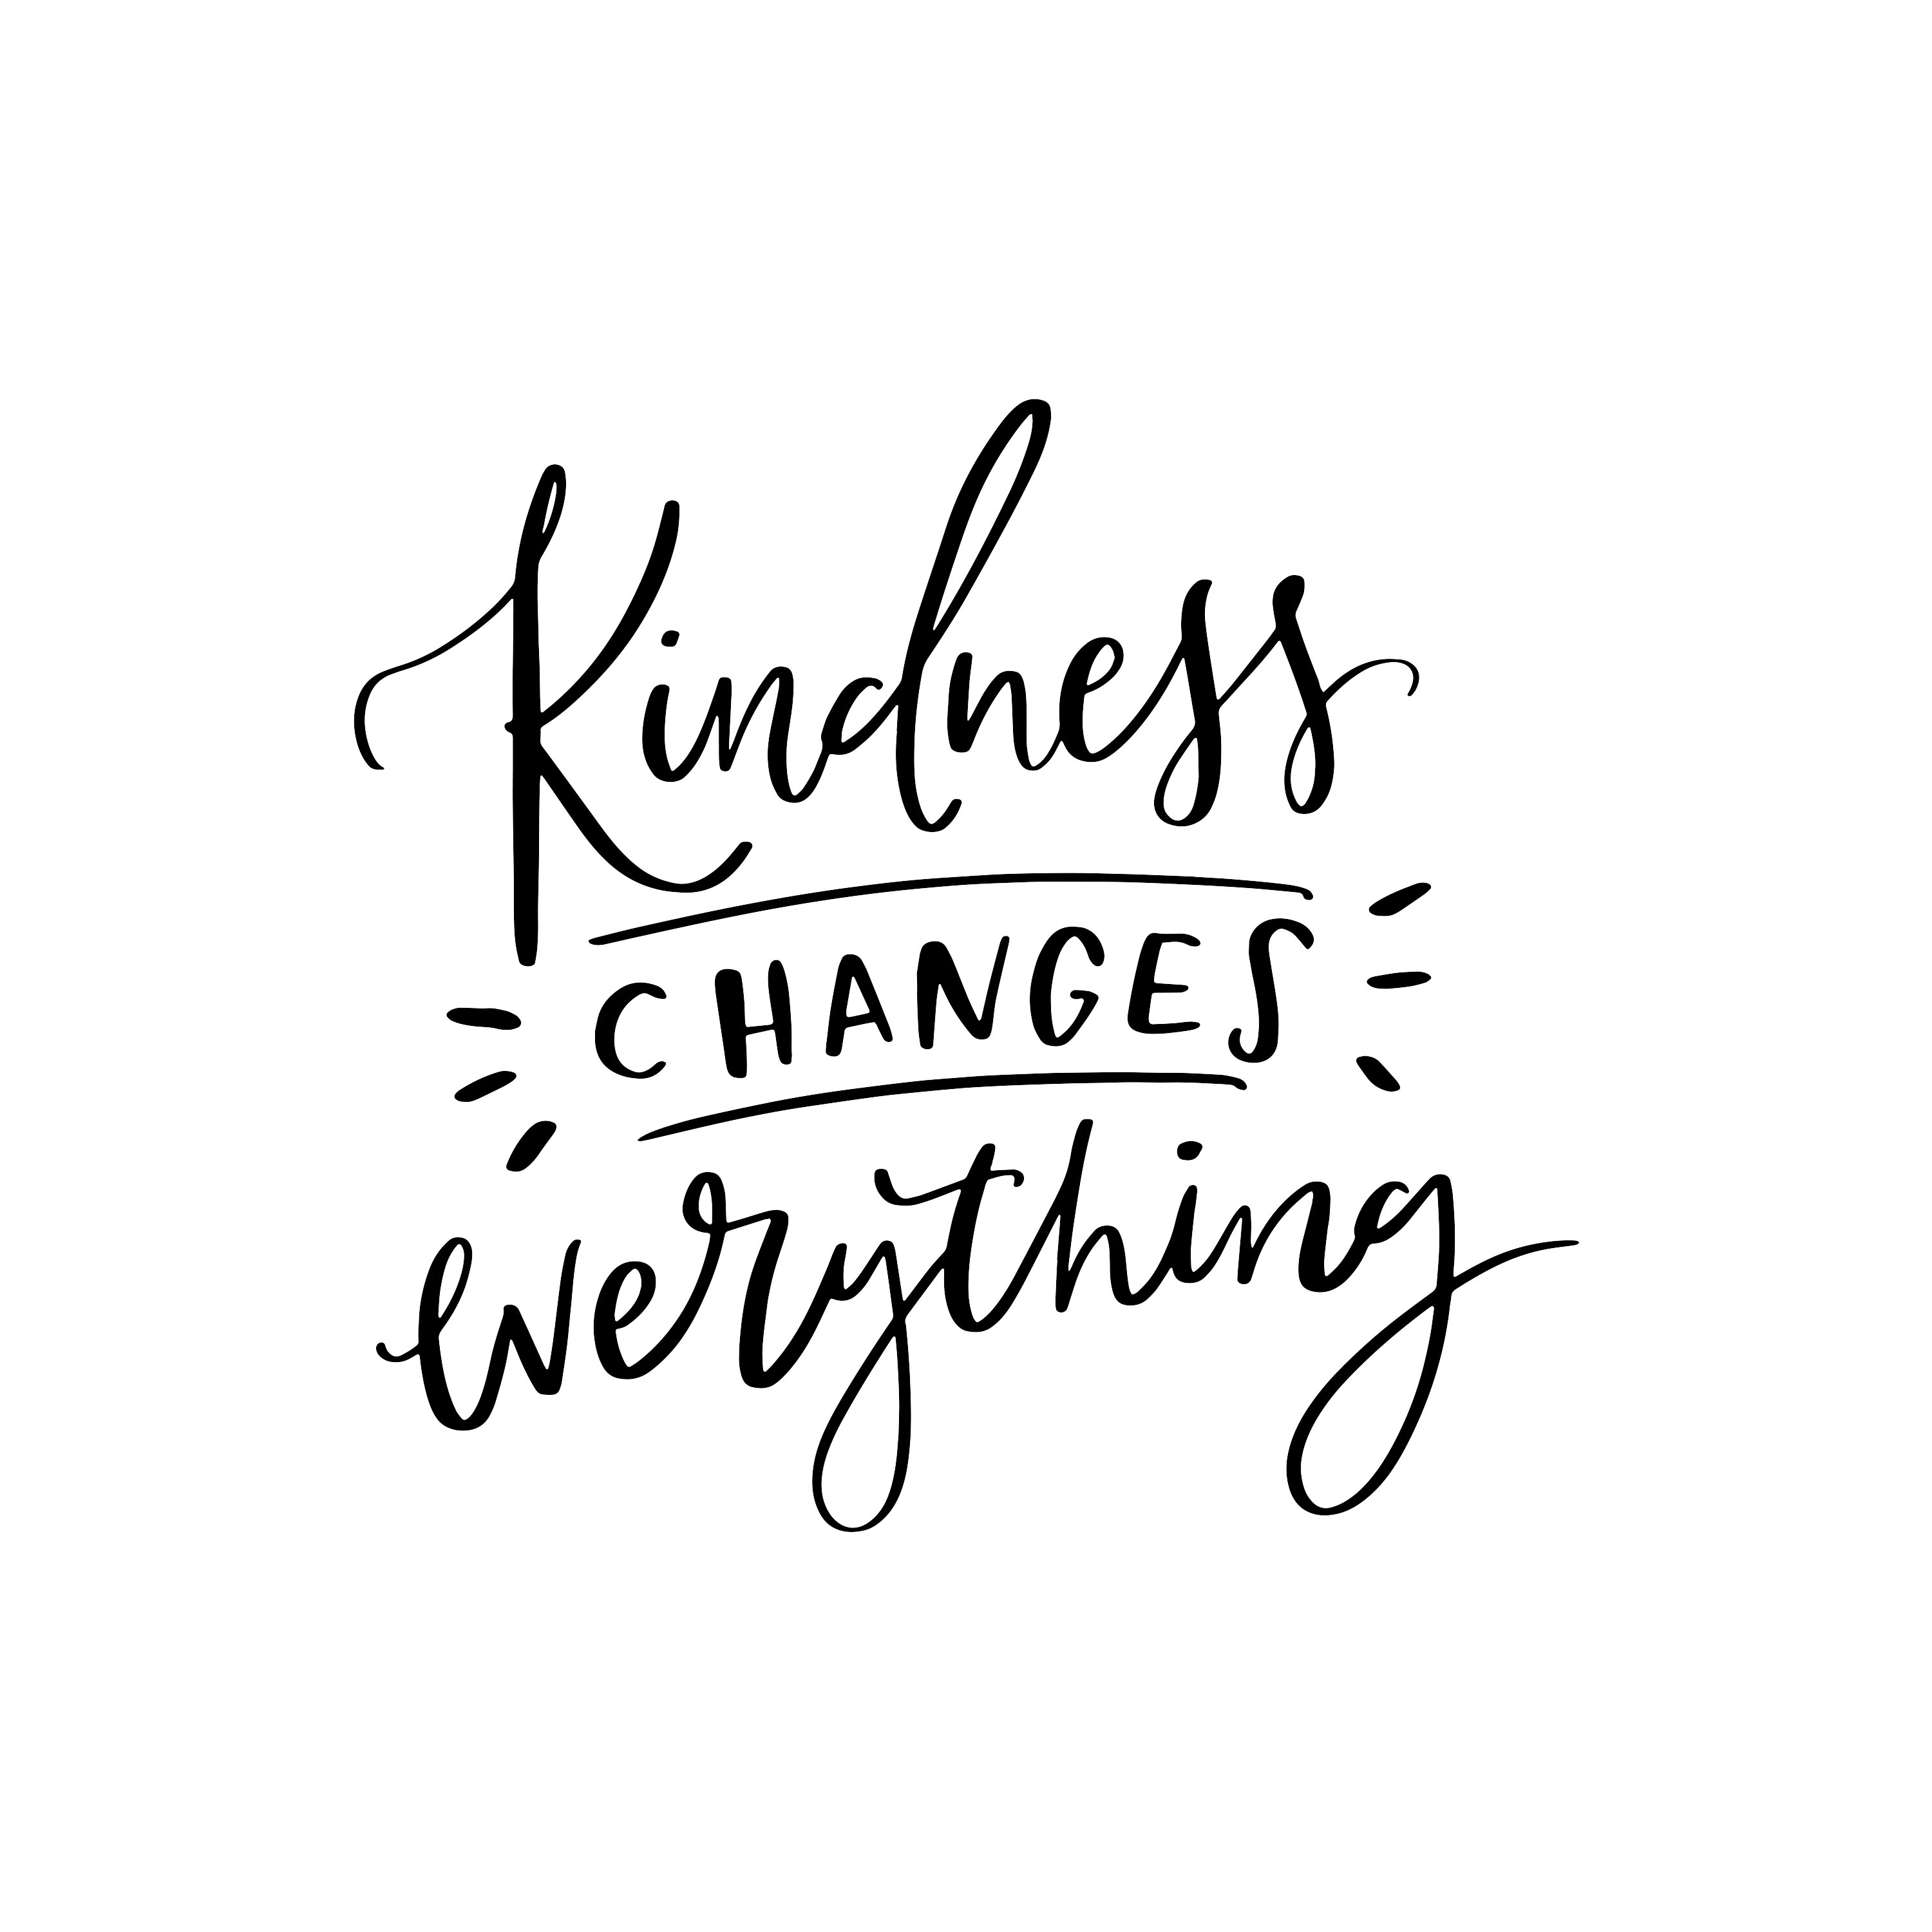 12. Kindness Changes Everything